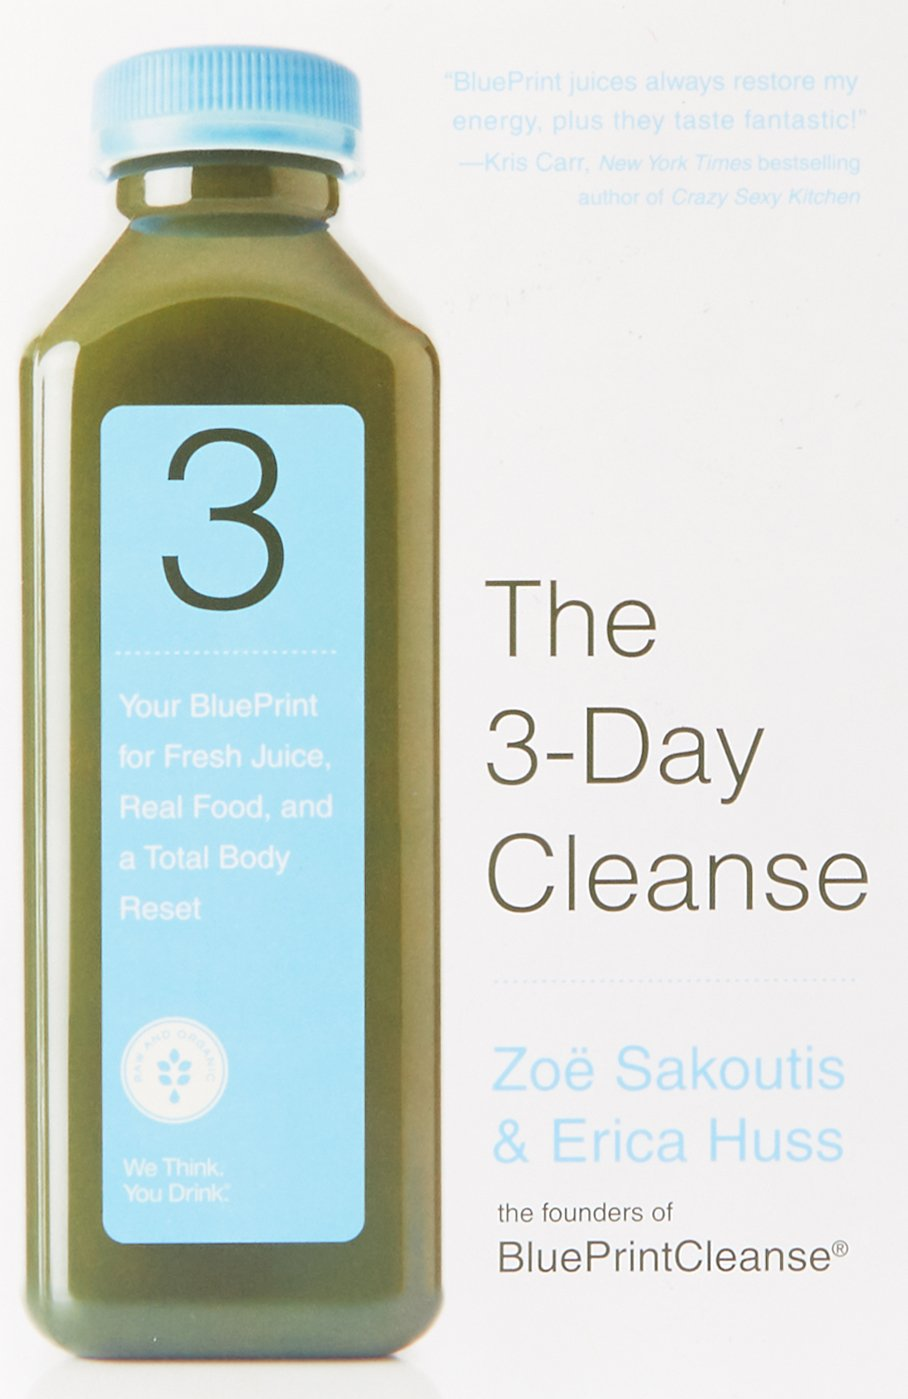 The 3 day cleanse drink fresh juice eat real food and get back the 3 day cleanse drink fresh juice eat real food and get back into your skinny jeans amazon zoe sakoutis erica huss 9780446545716 books malvernweather Gallery